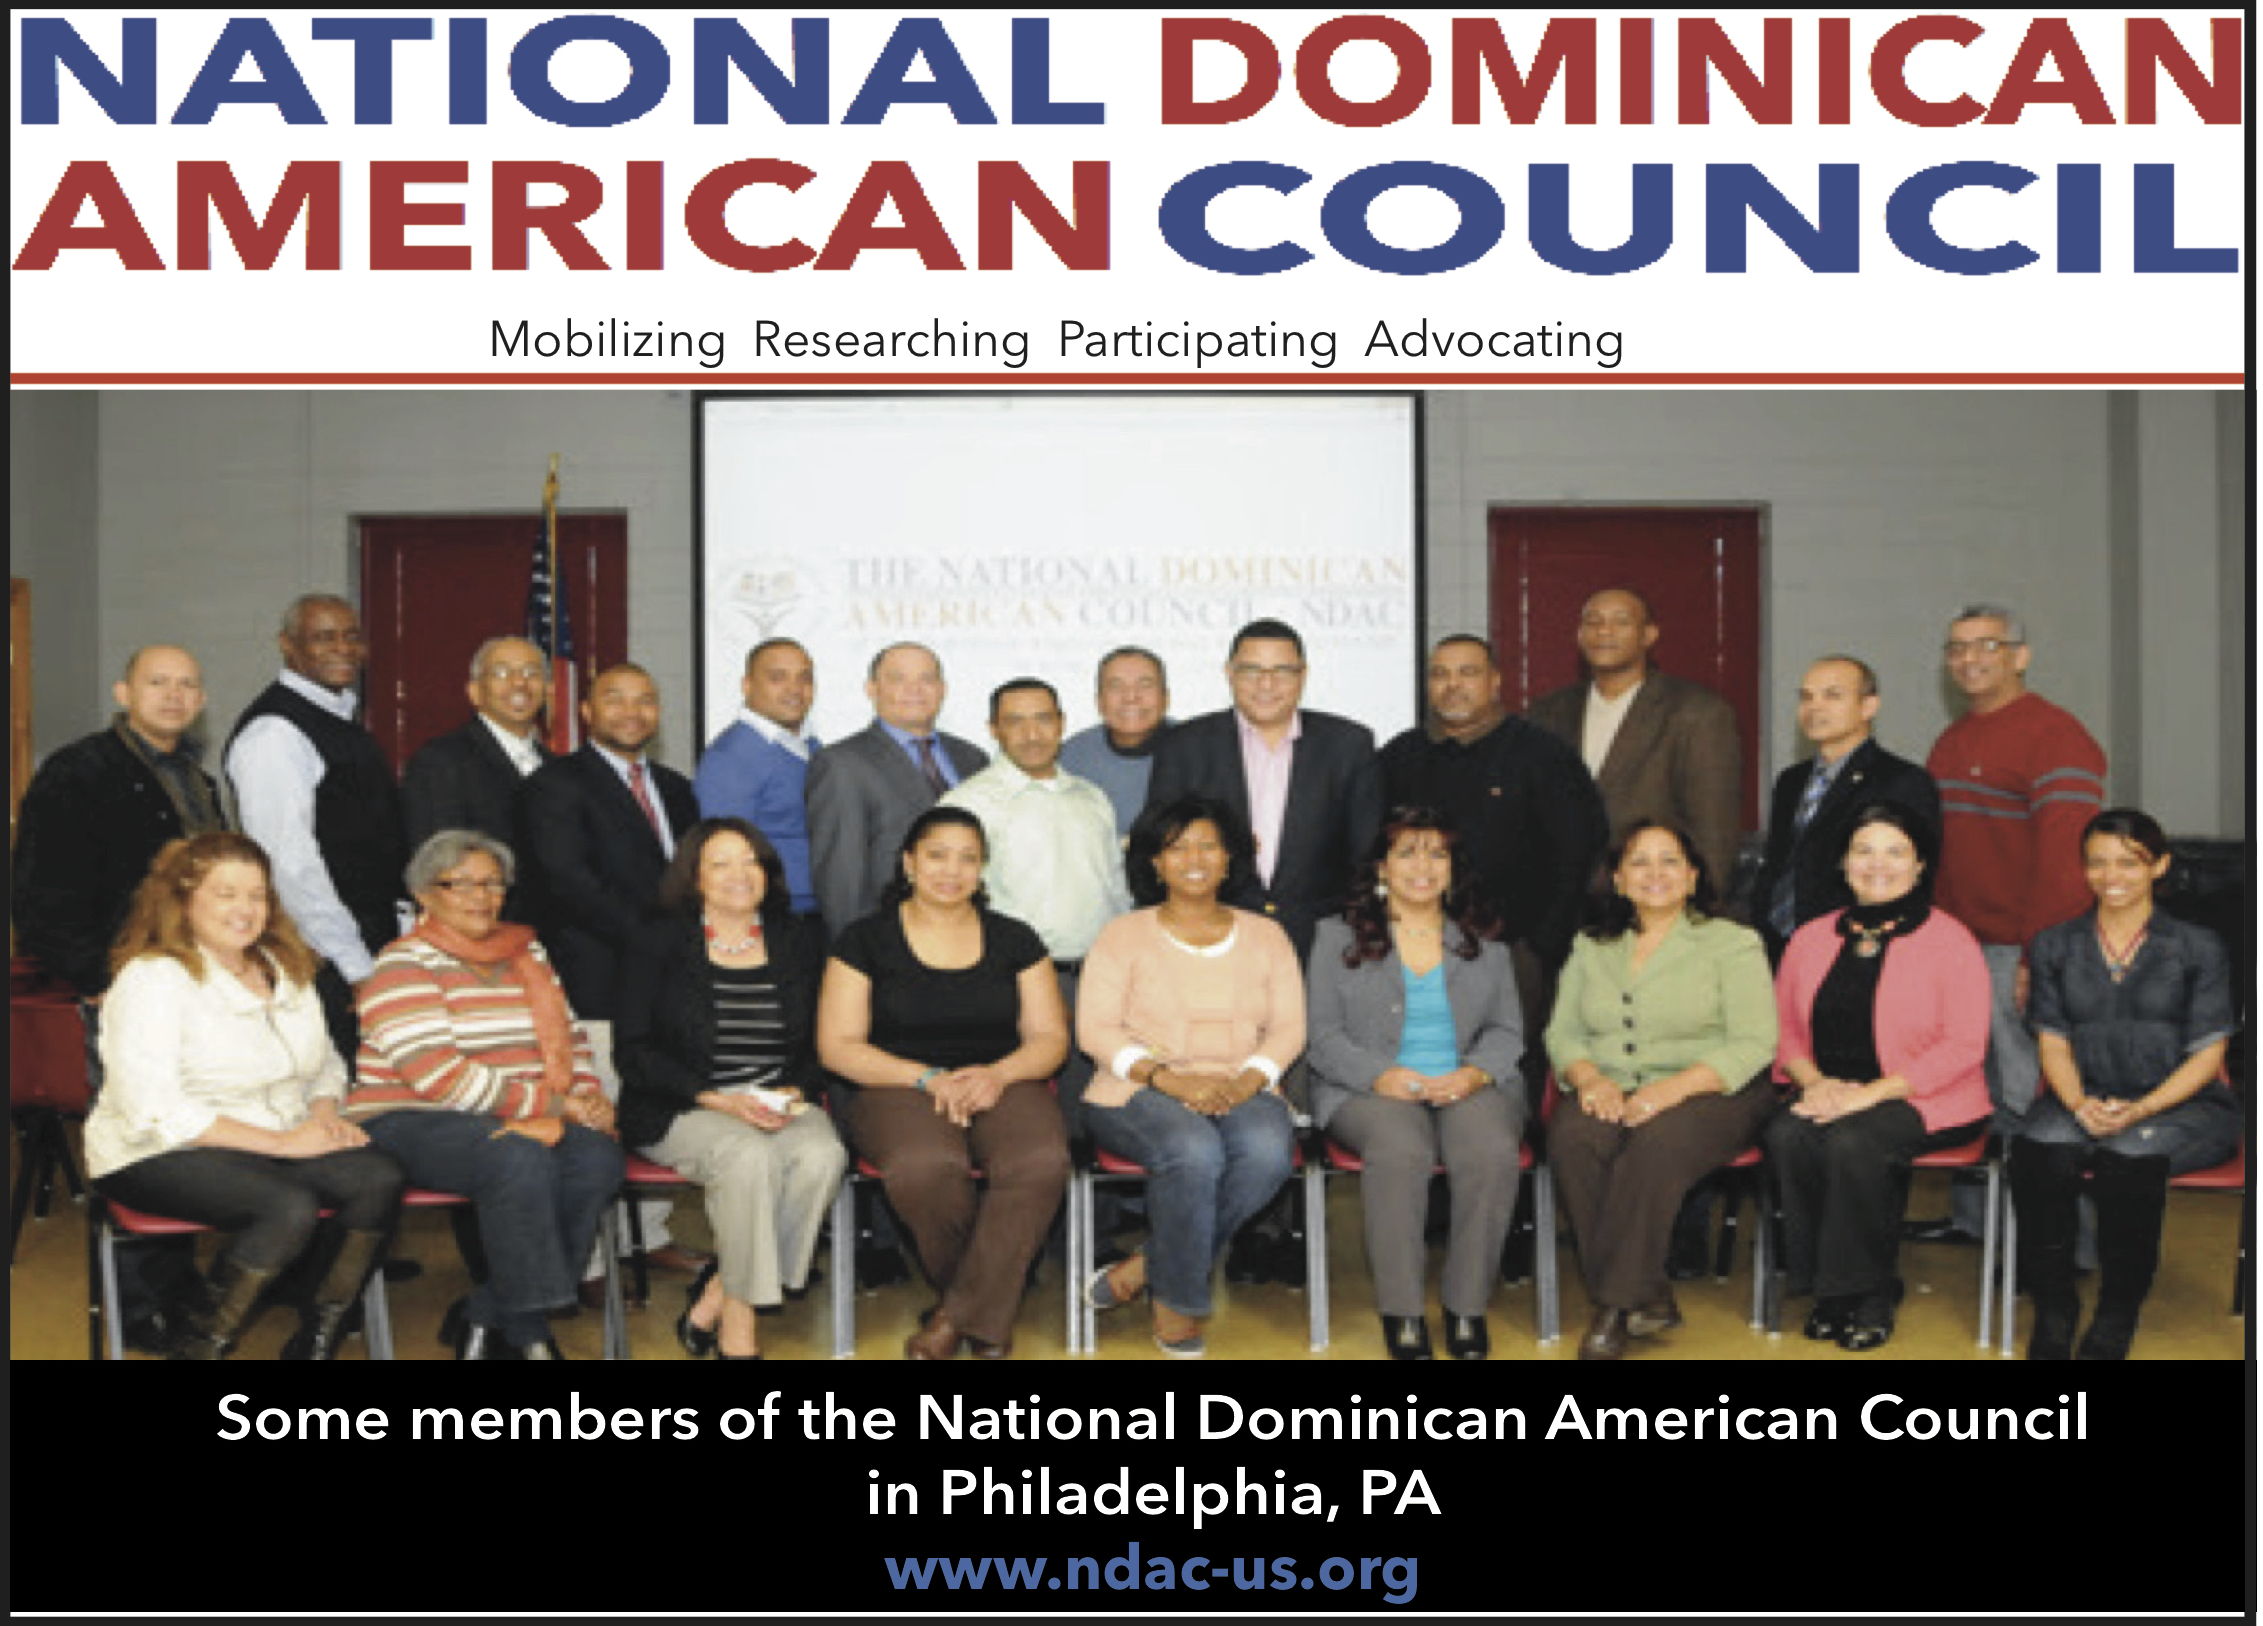 da-council-in-philadelphia-pa